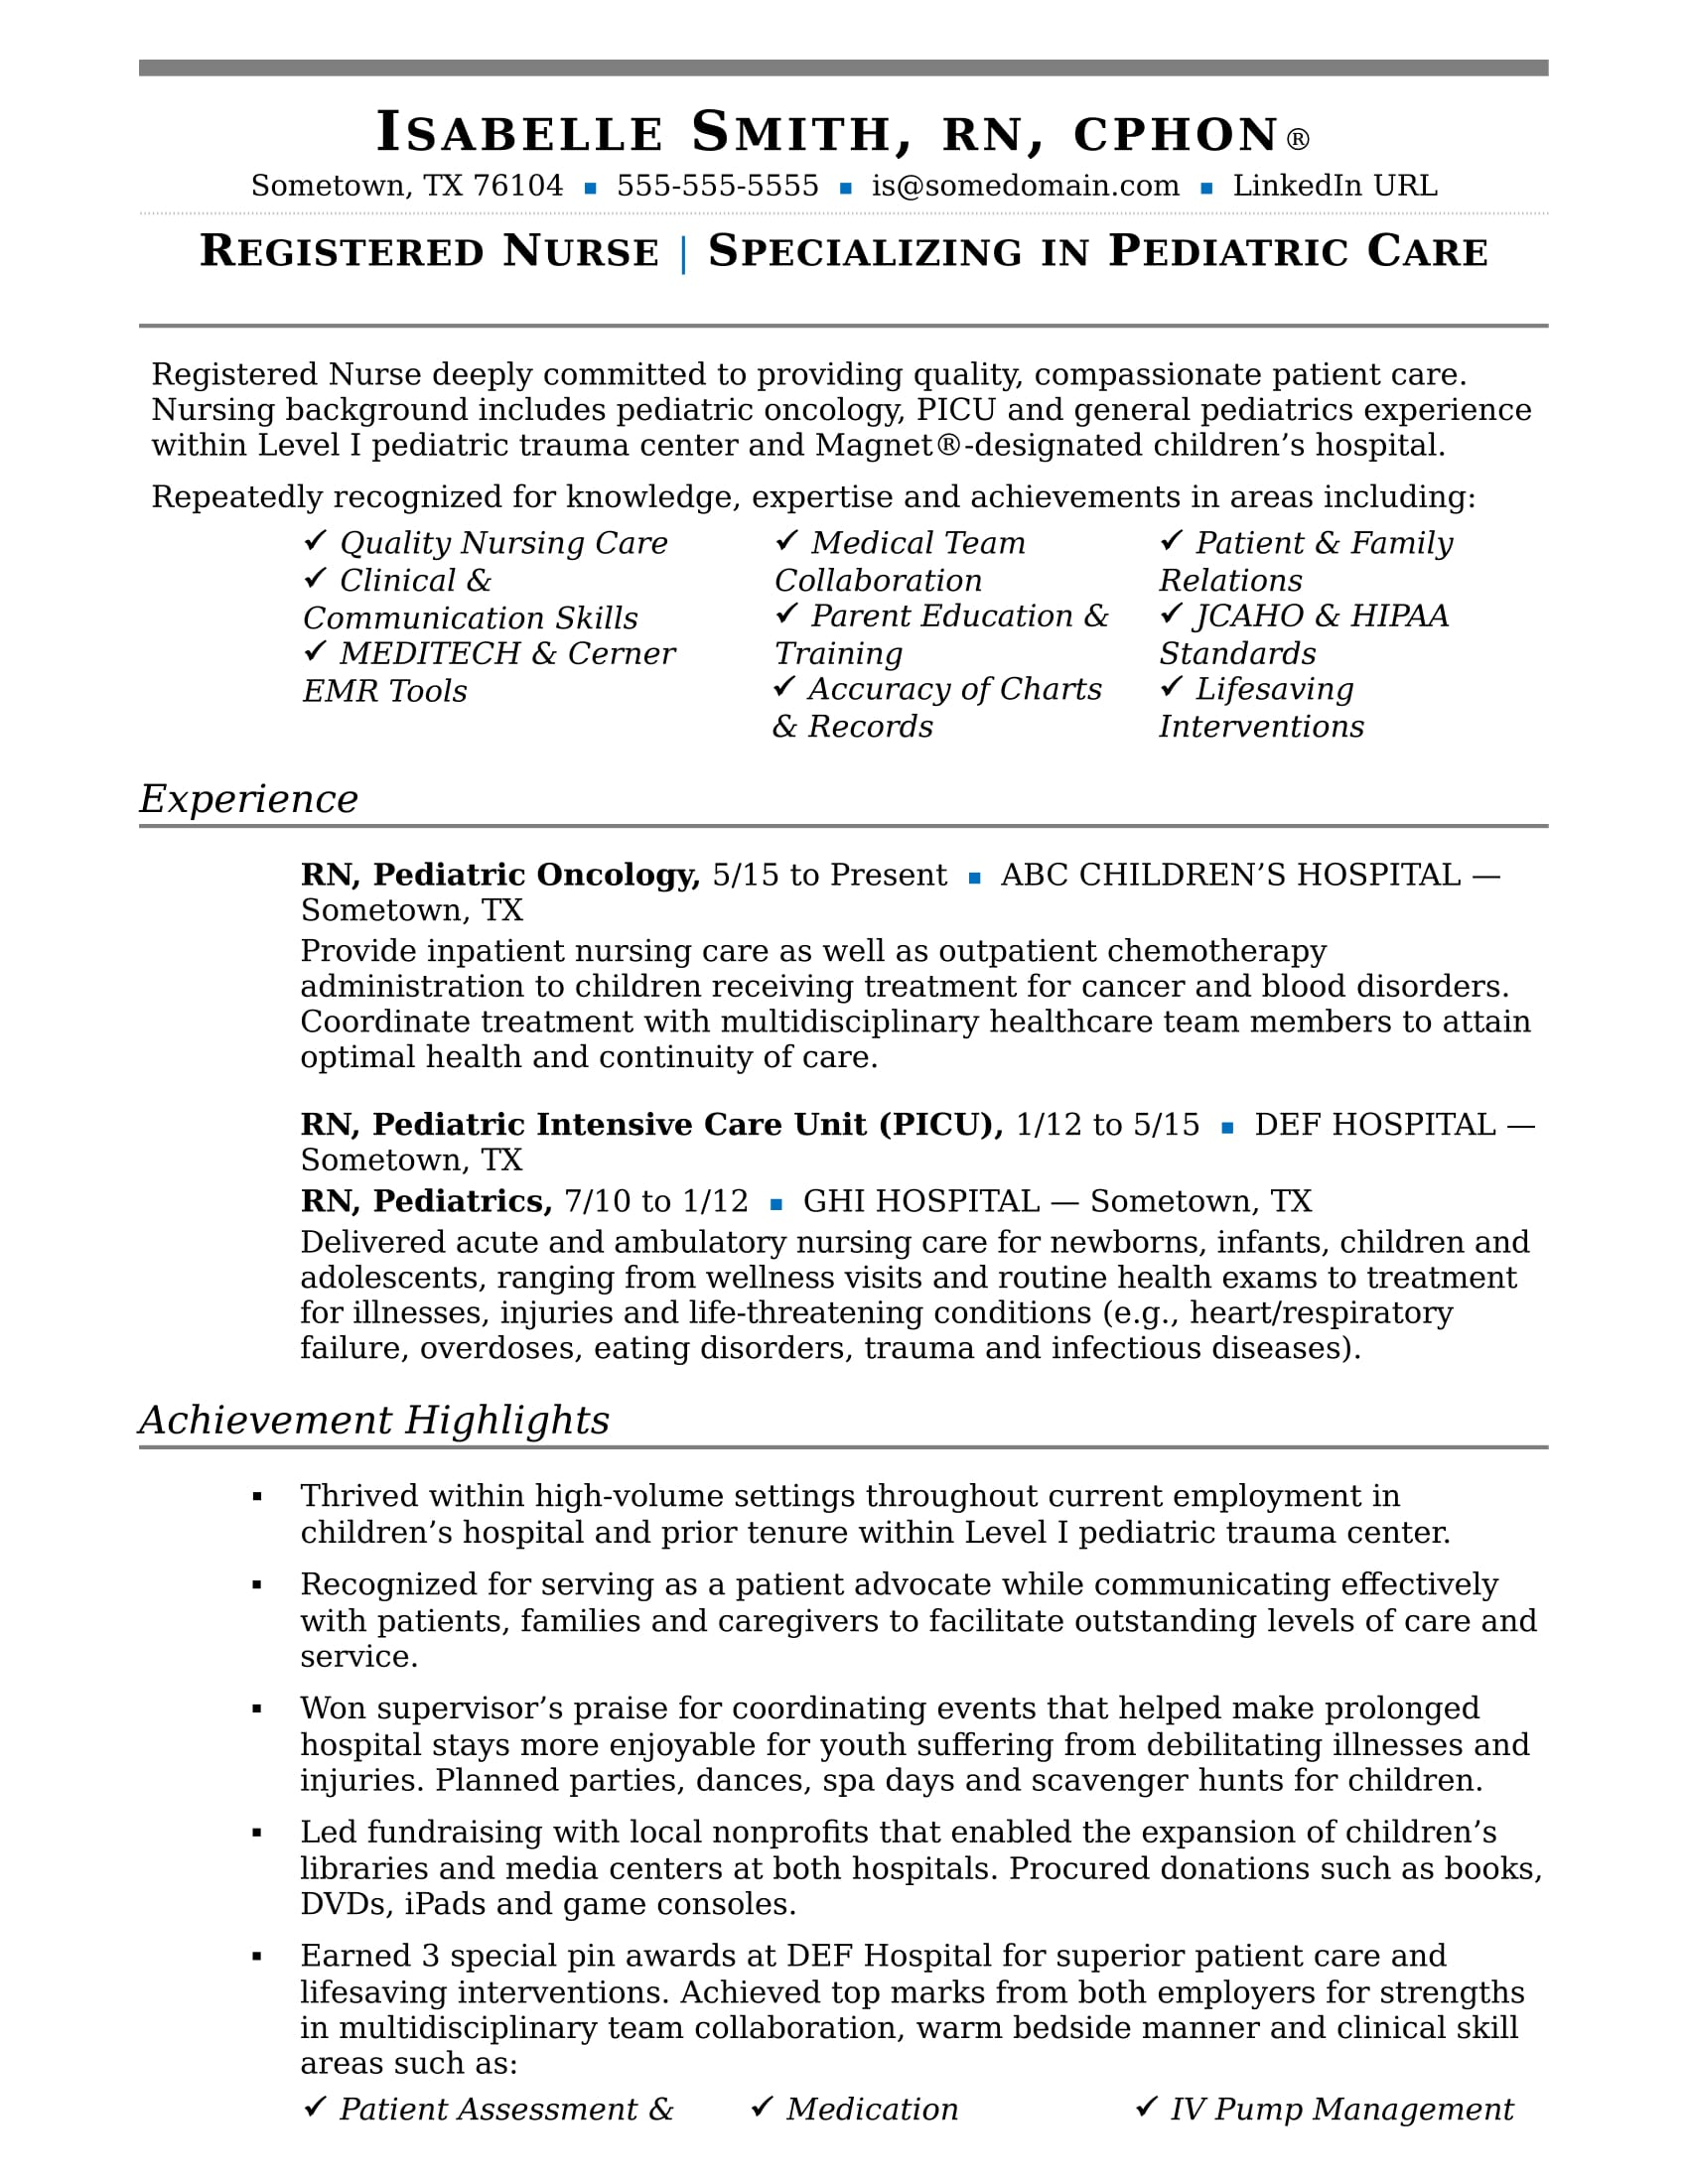 nurse resume sample monster oncology objective crisis intervention specialist people Resume Oncology Nurse Resume Objective